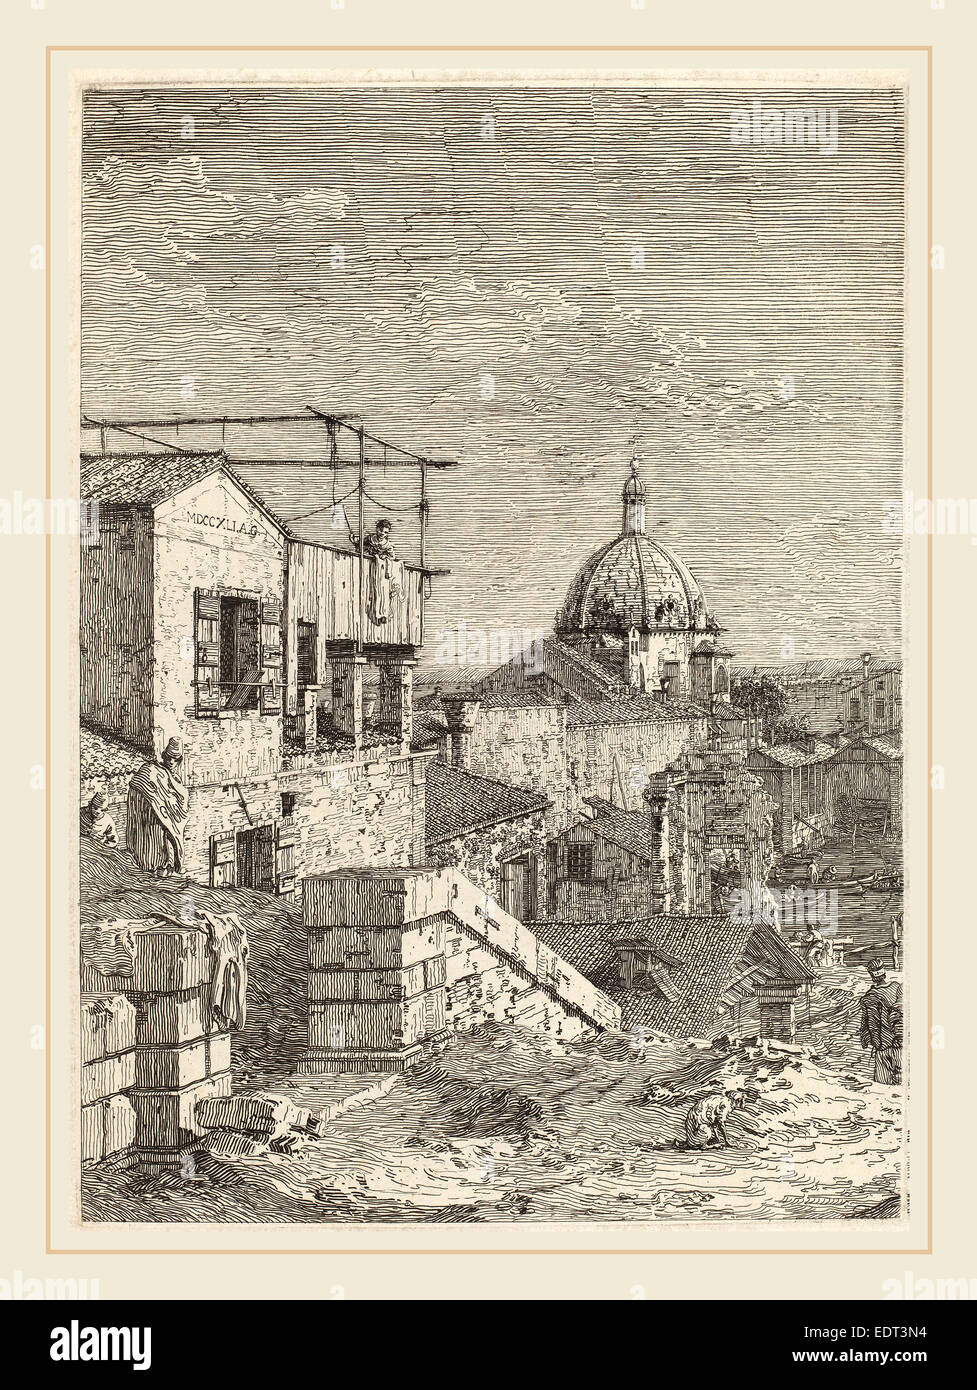 Canaletto (Italian, 1697-1768), The House with the Inscription [left], 1741, etching - Stock Image